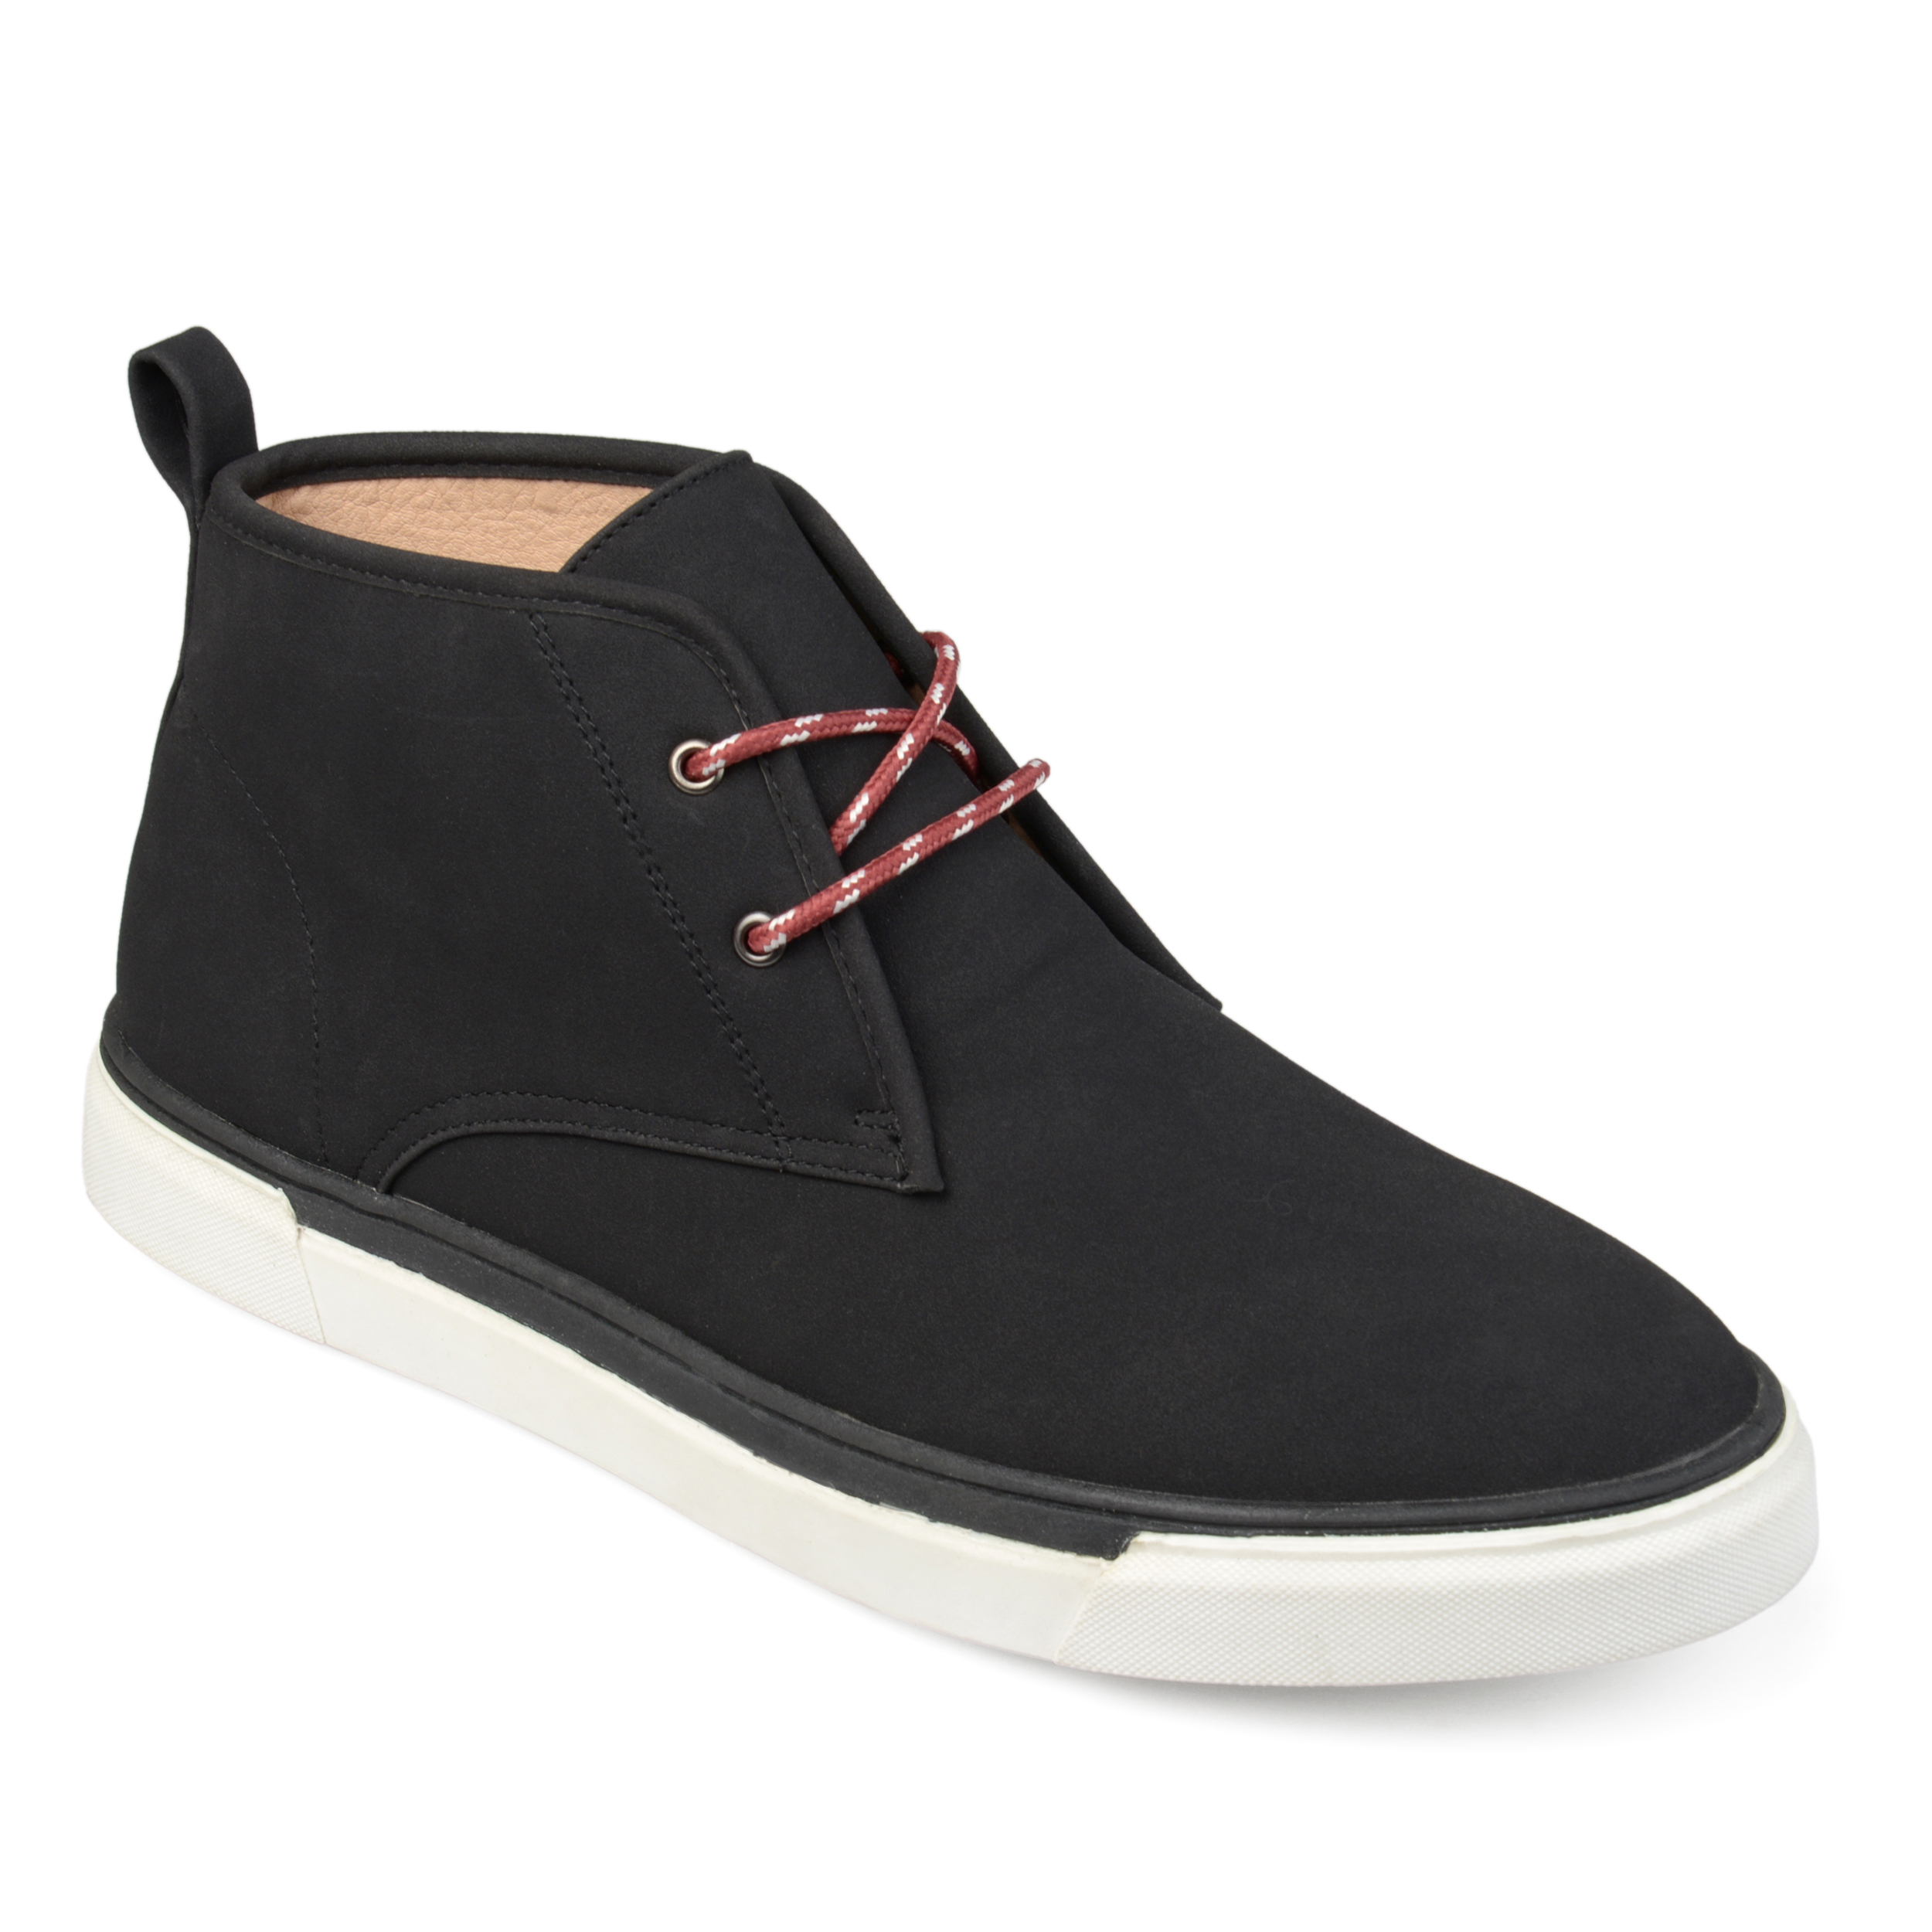 Territory Men's Casual Lace-Up Faux Suede Chukka Boots